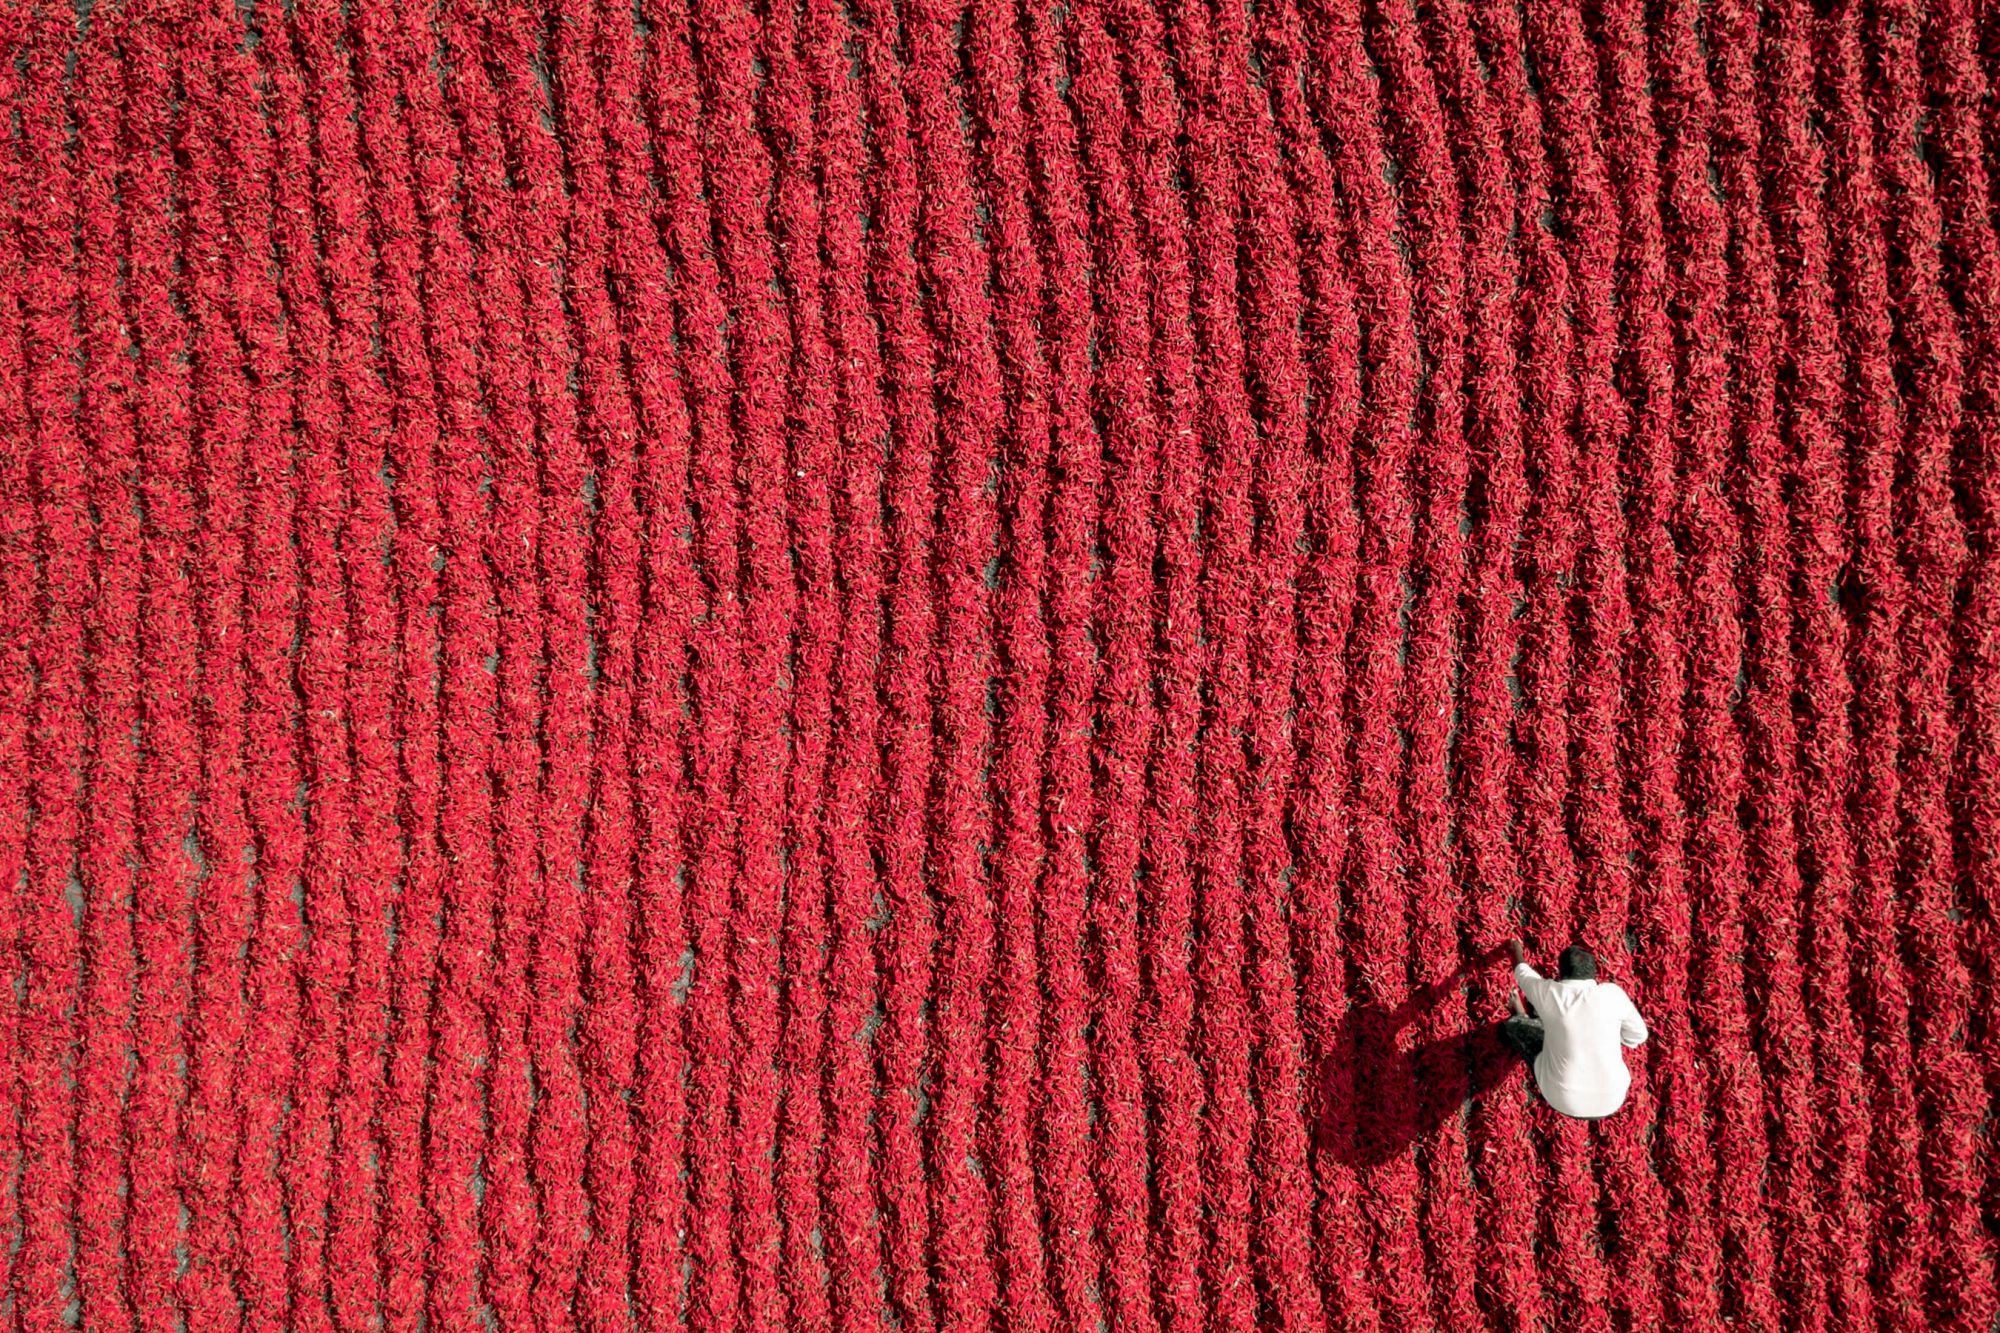 A Farmer Working a Red Chili Field in Guntur, India